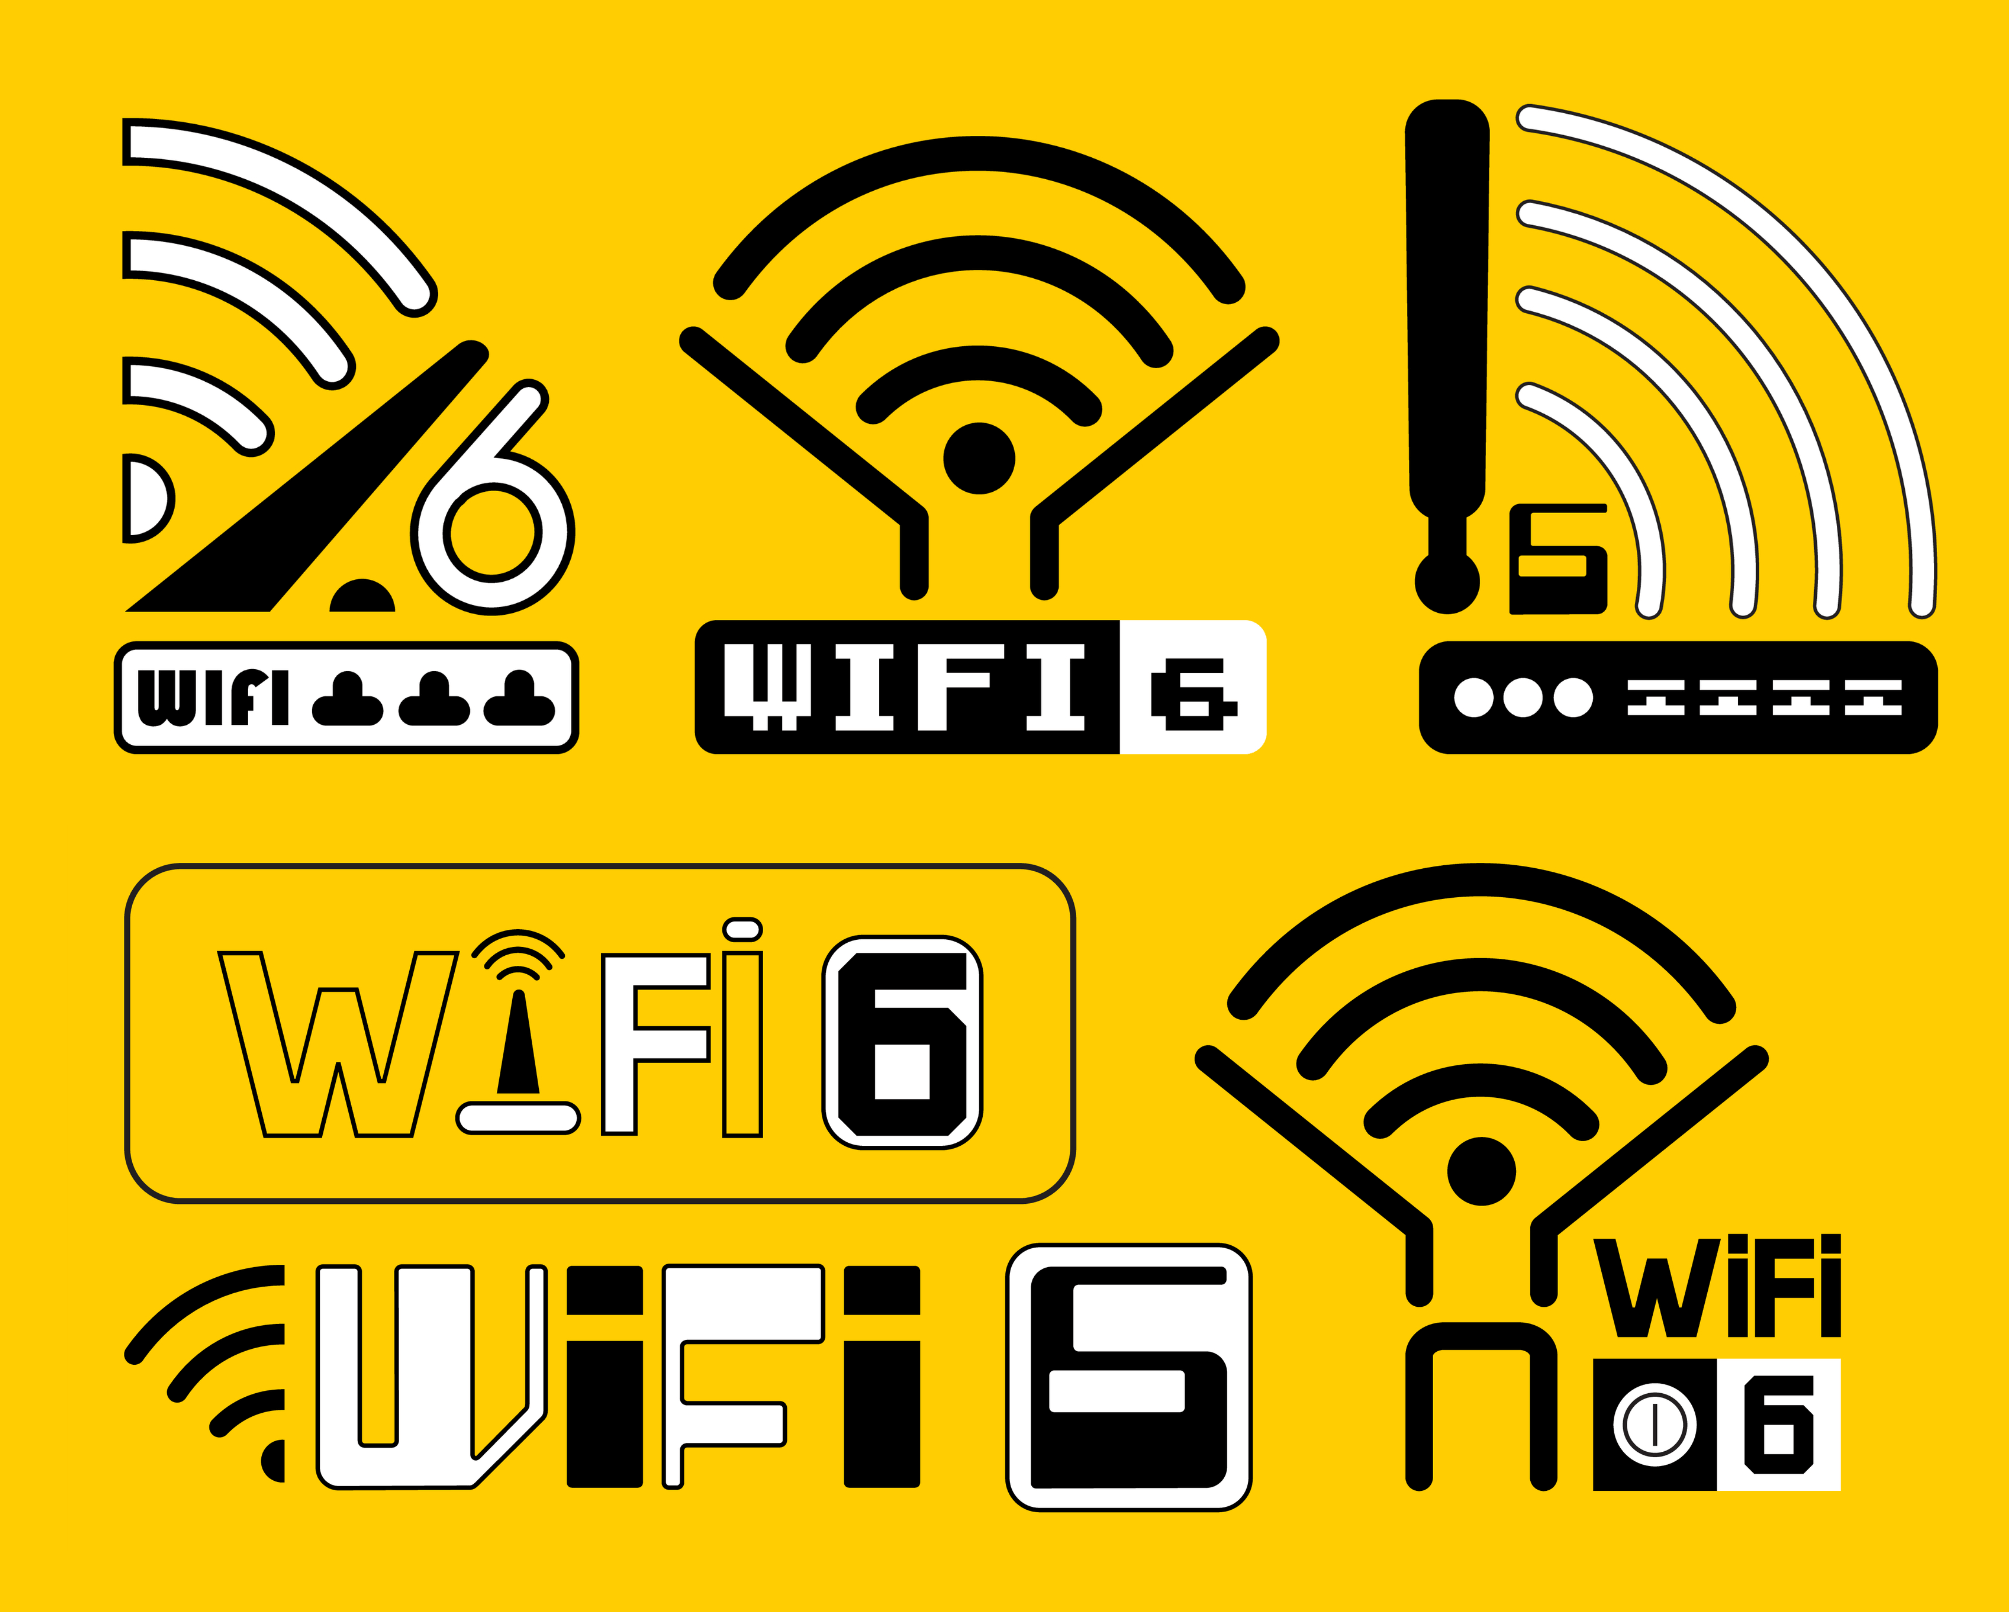 Opinion: Wi-Fi 6E opens new possibilities for fast wireless connectivity